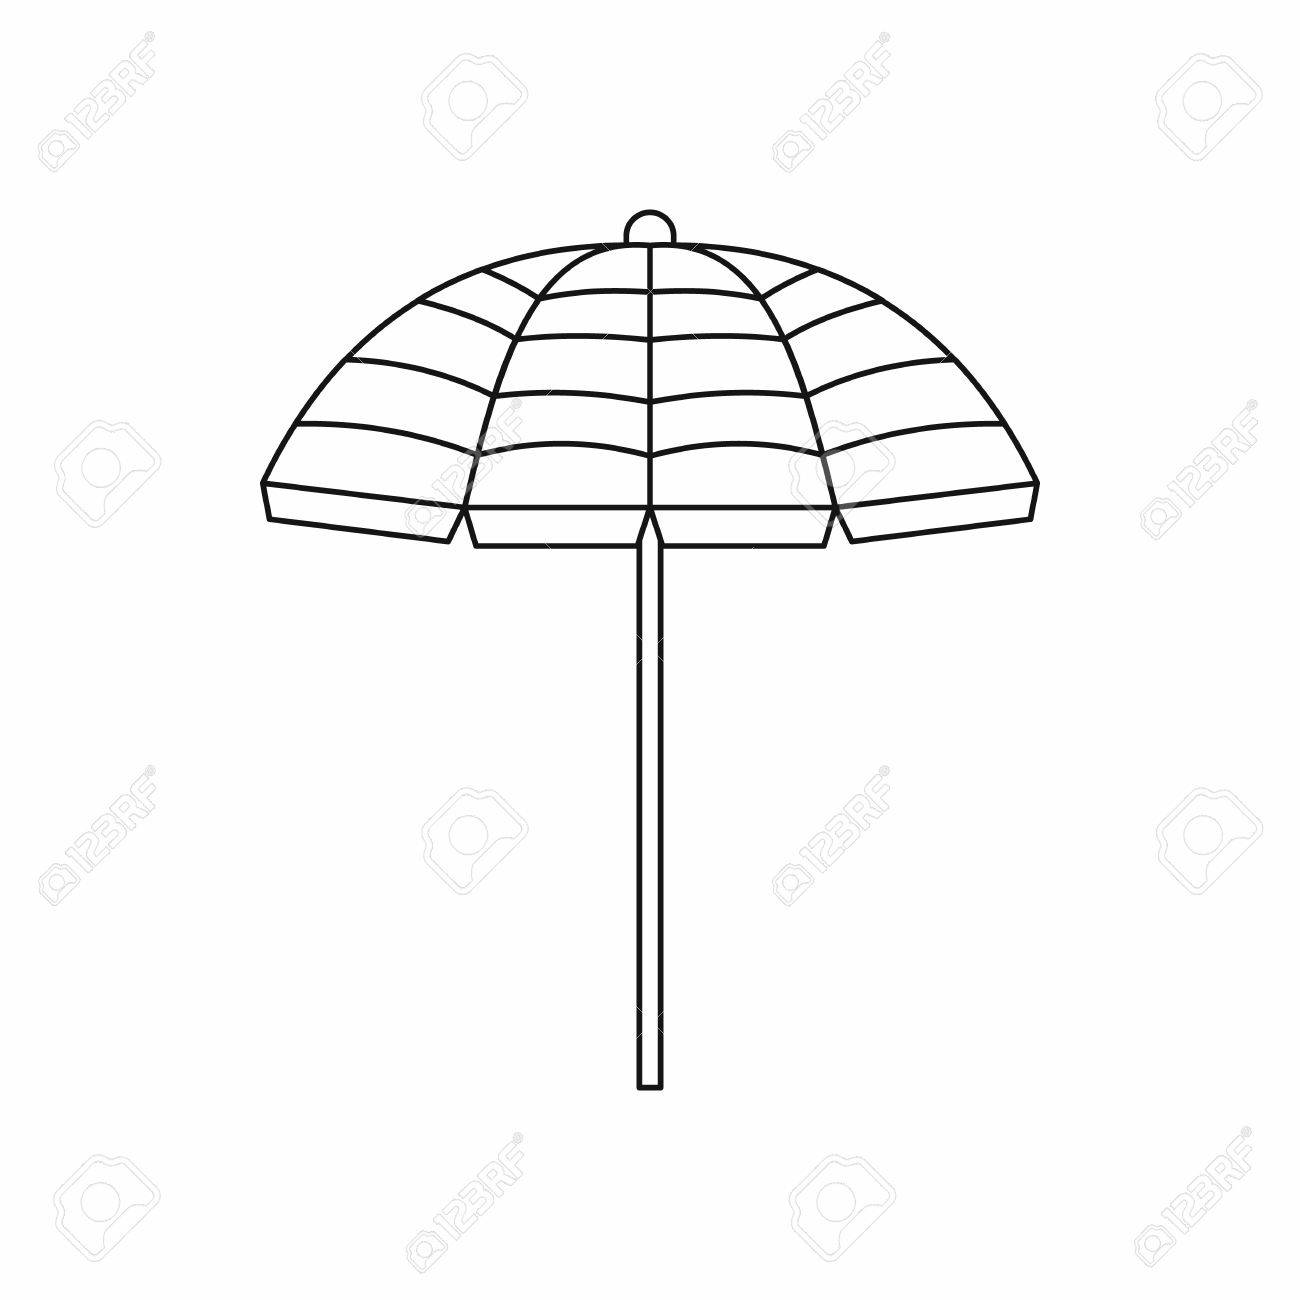 Beach umbrella icon in outline style isolated on white background.